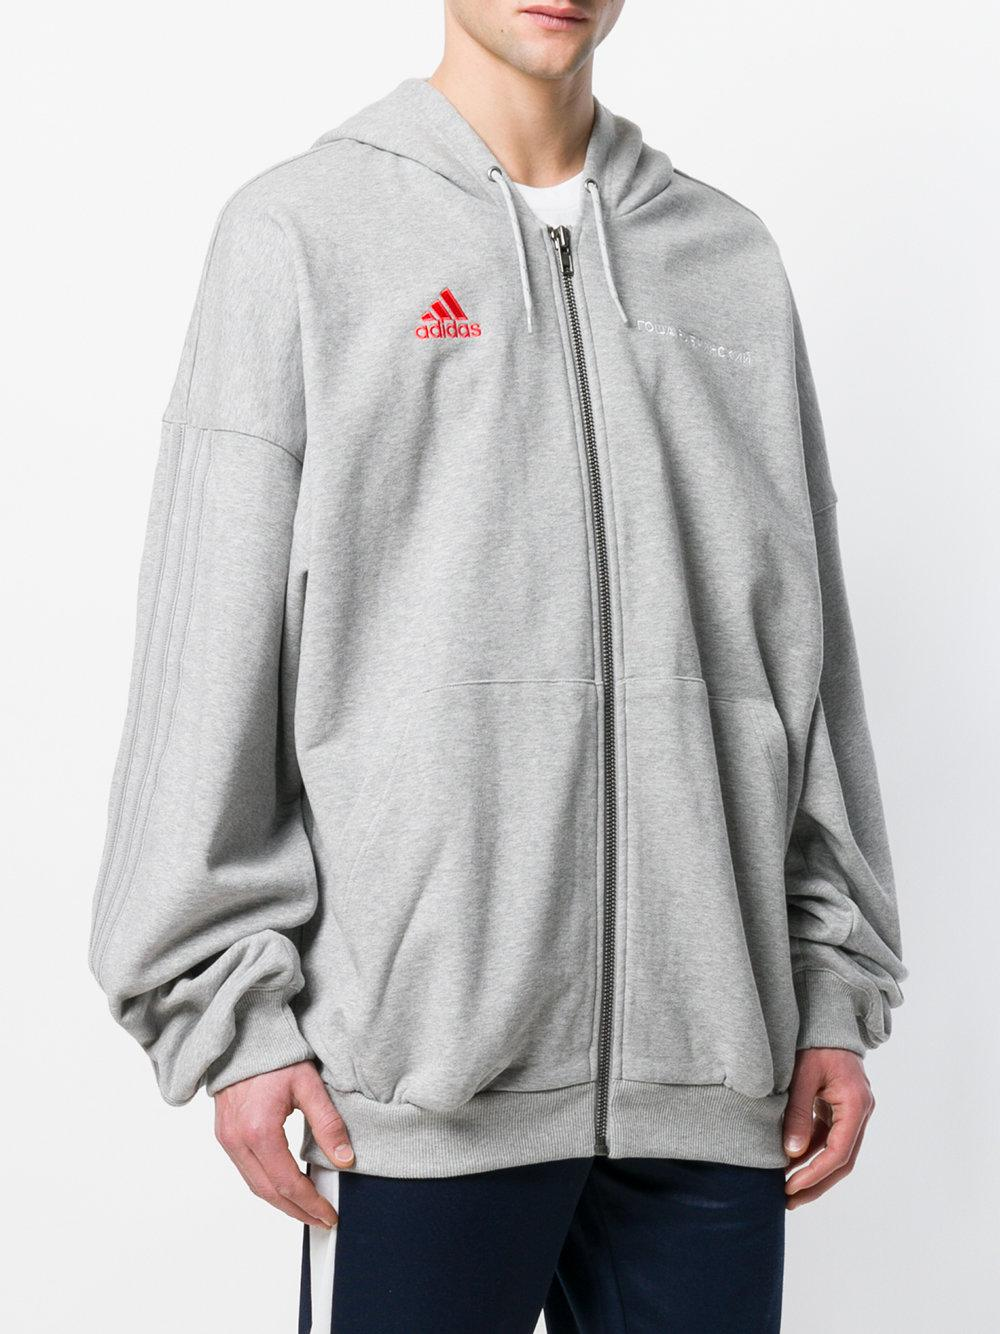 100% authentic various colors promo code X Adidas Logo Embroidered Hoodie